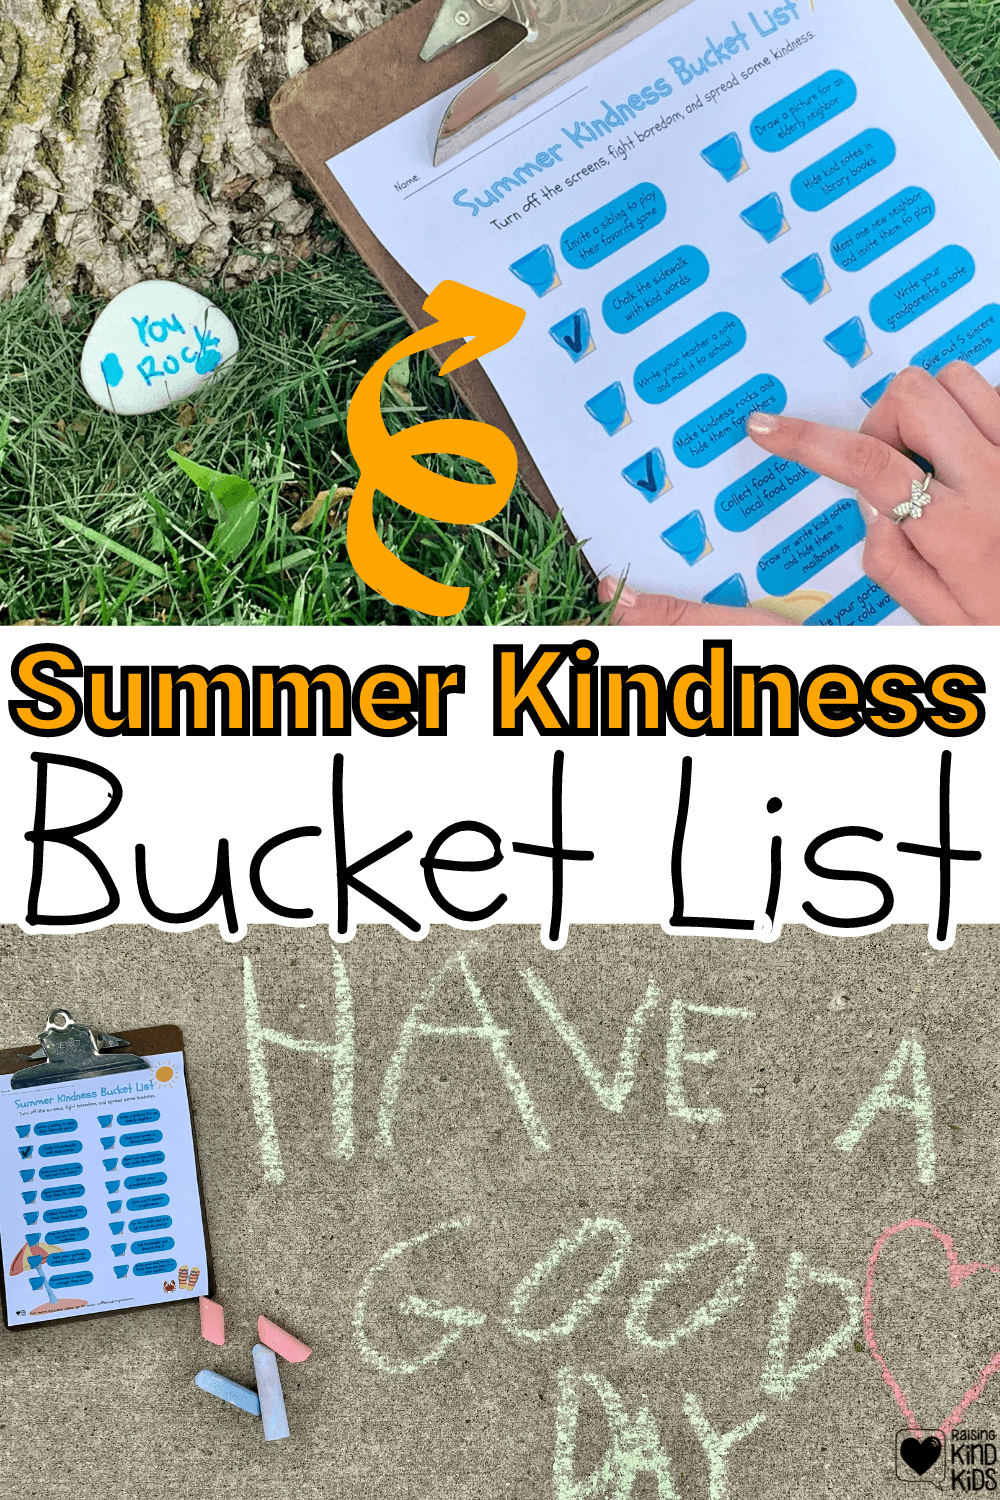 Use this summer kindness bucketlist to encourage your kids or students to act and speak with more kindness this summer and learn different ways to show their kindness. It's a great summer boredom buster for kids and families.